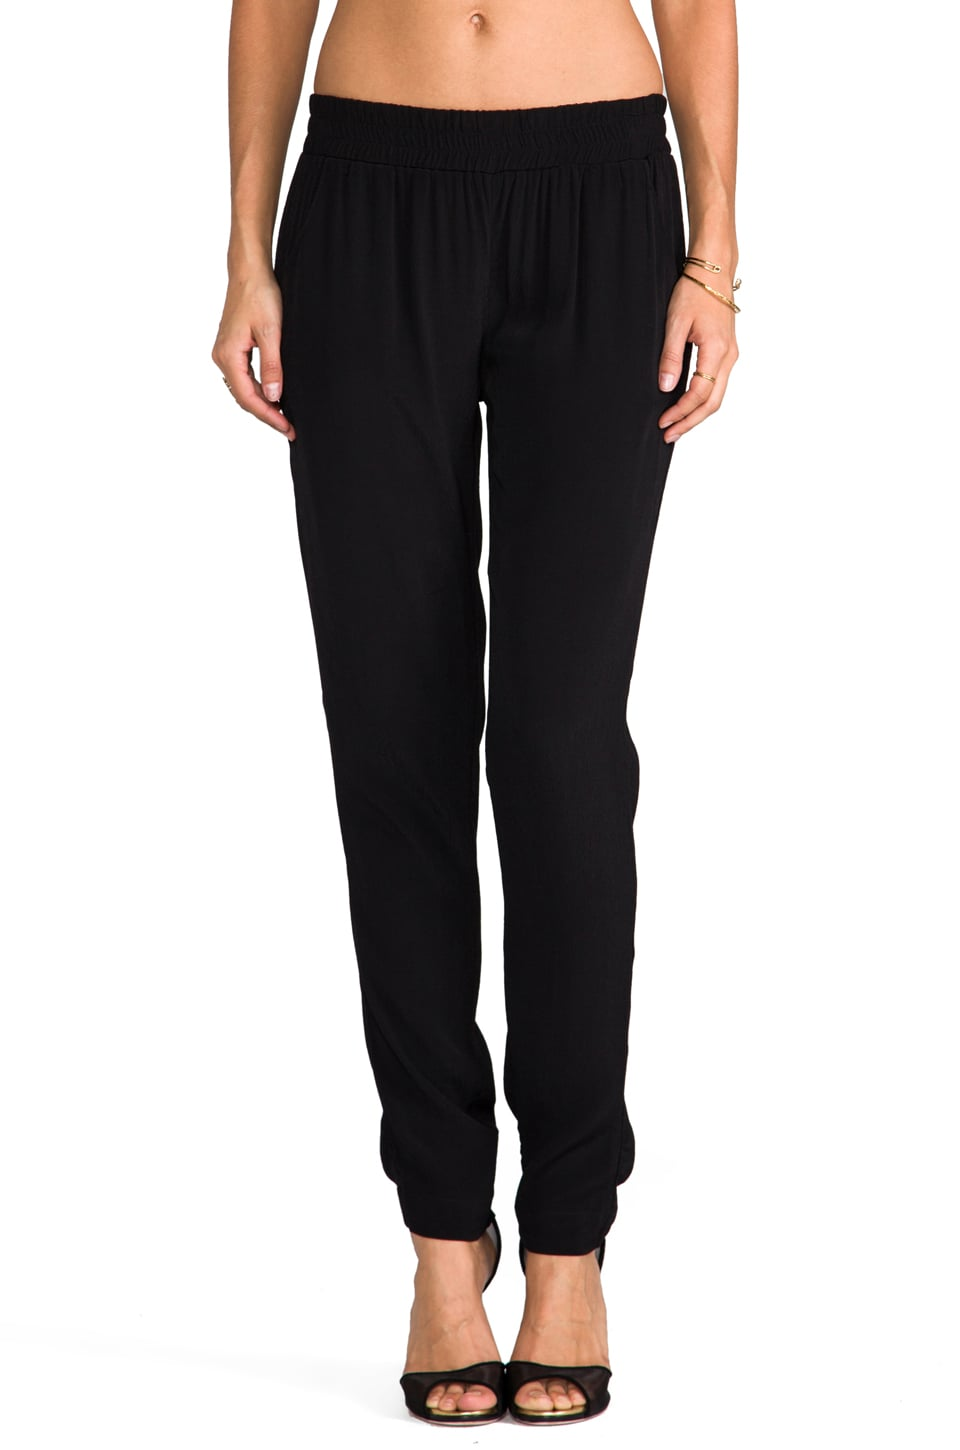 SAM&LAVI Lexi Pants in Black